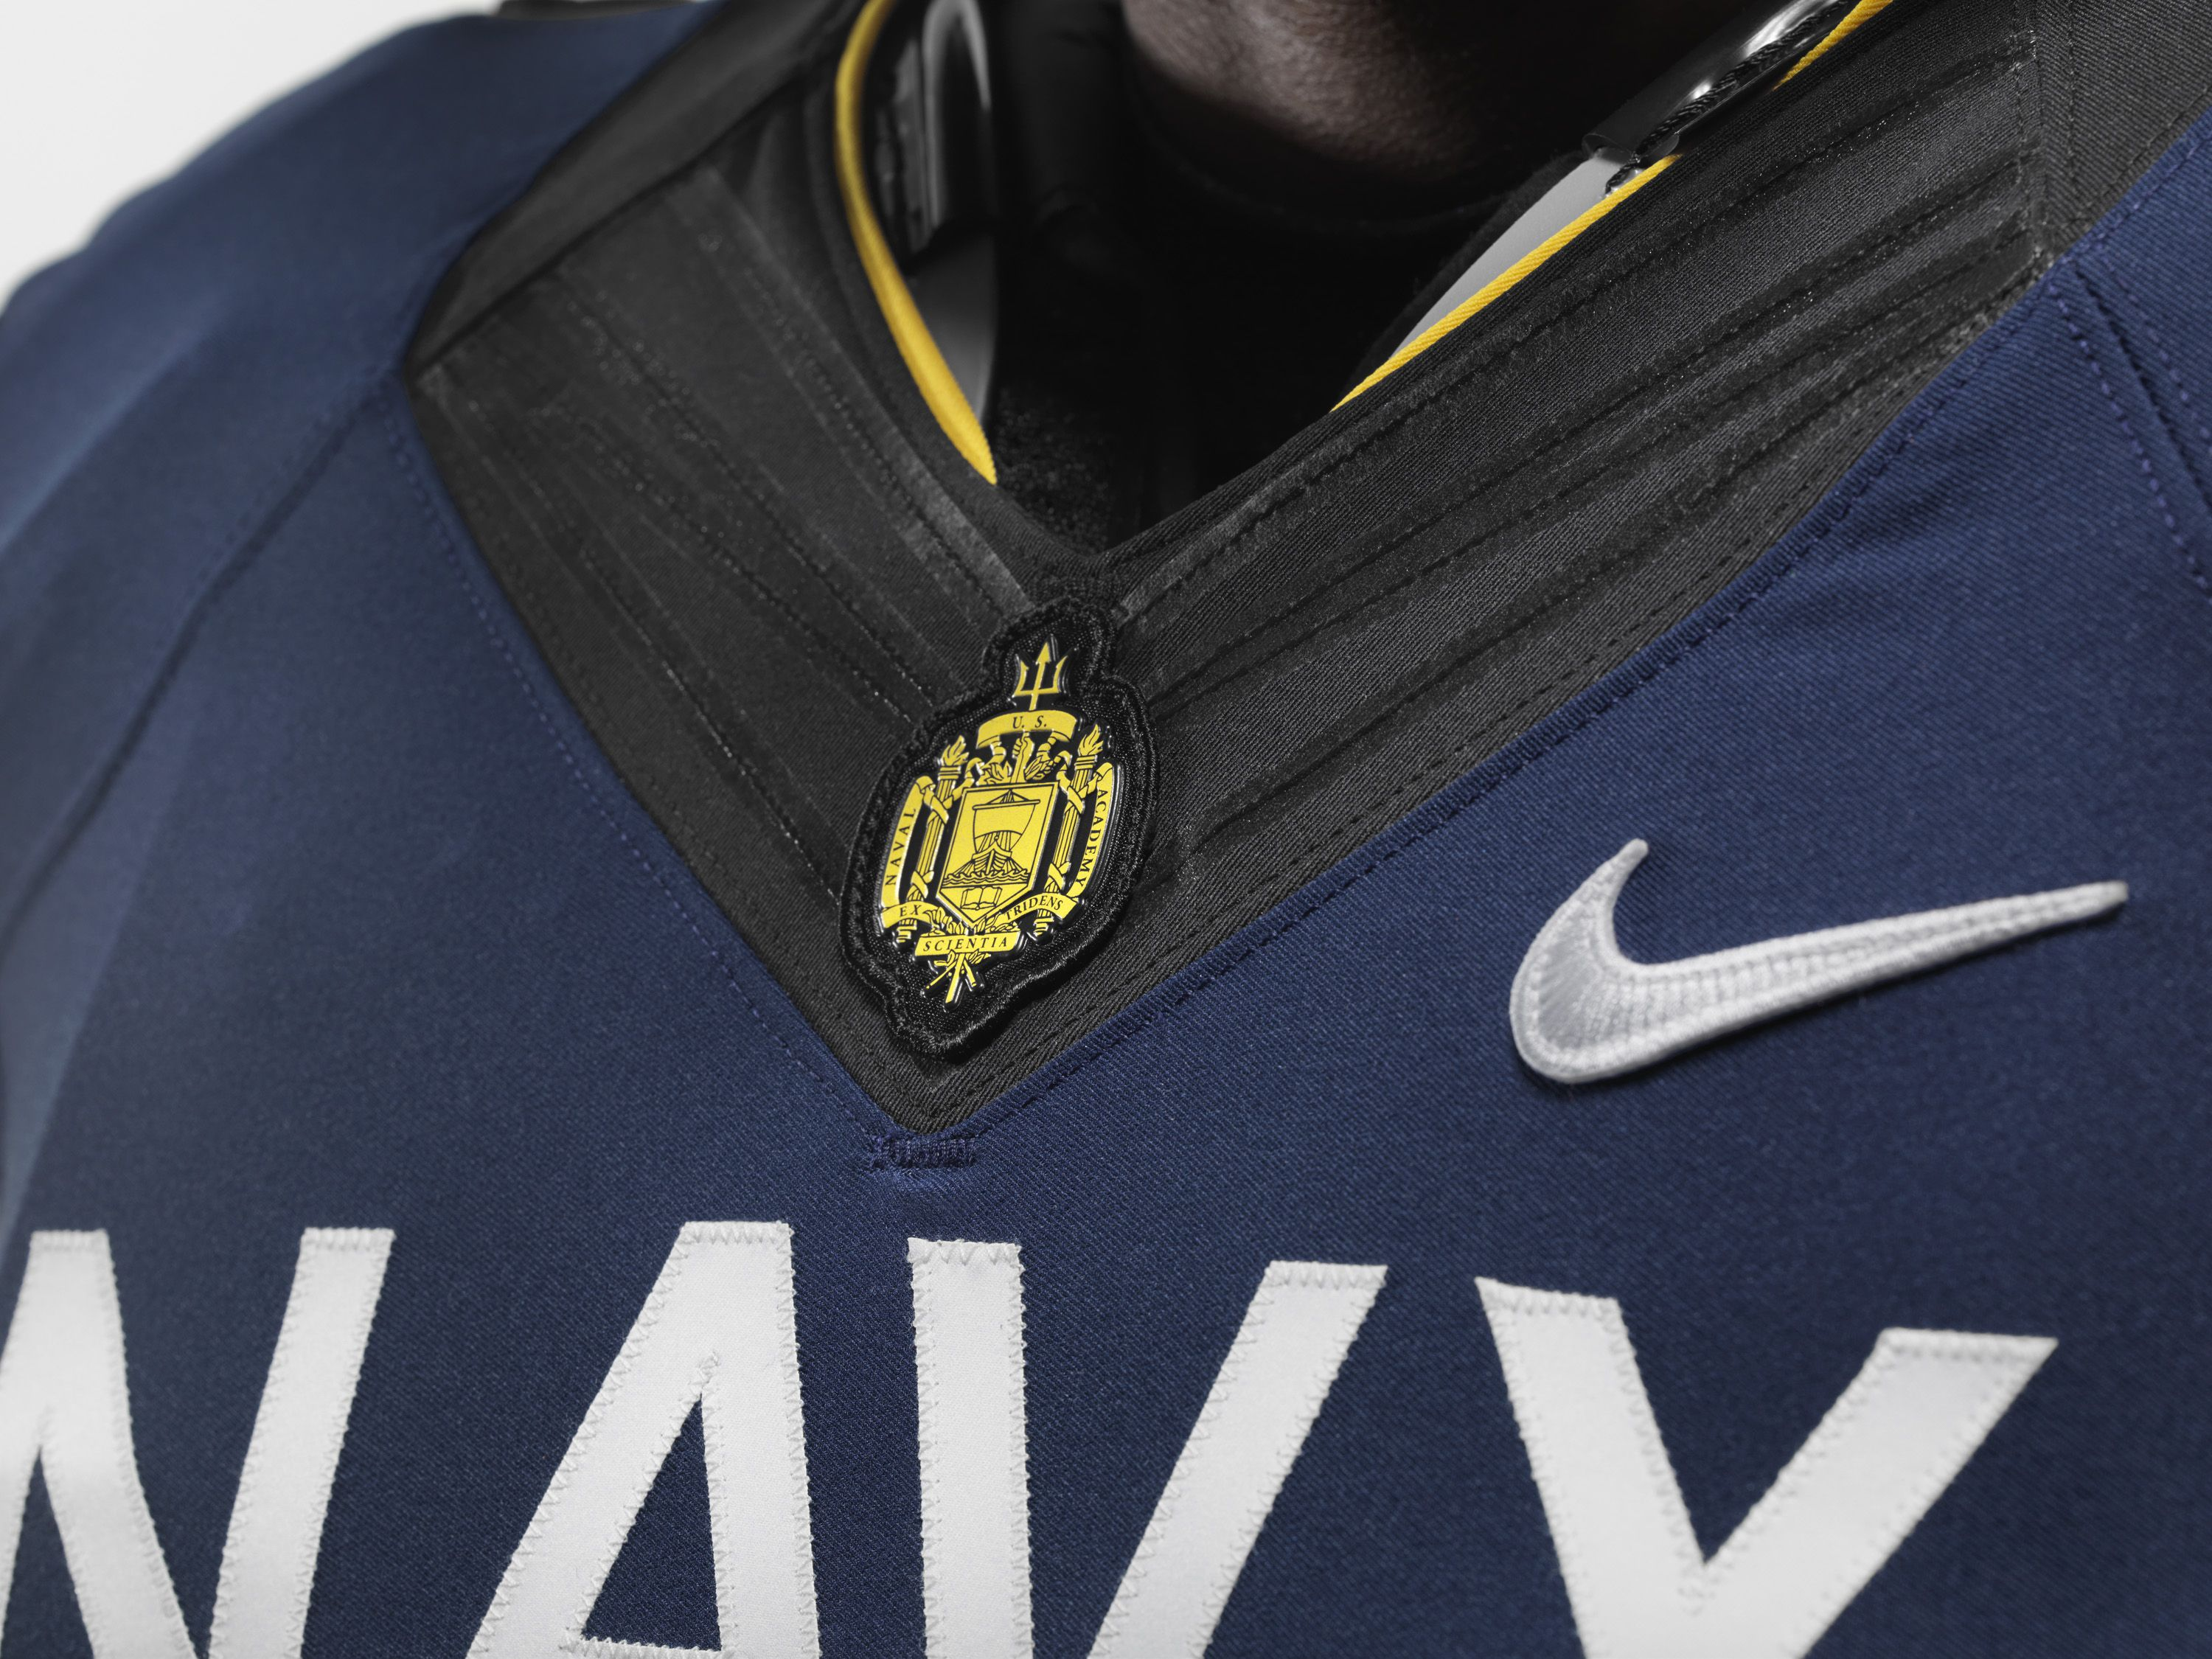 the naval academy logo and nike symbol on navy s uniform for the